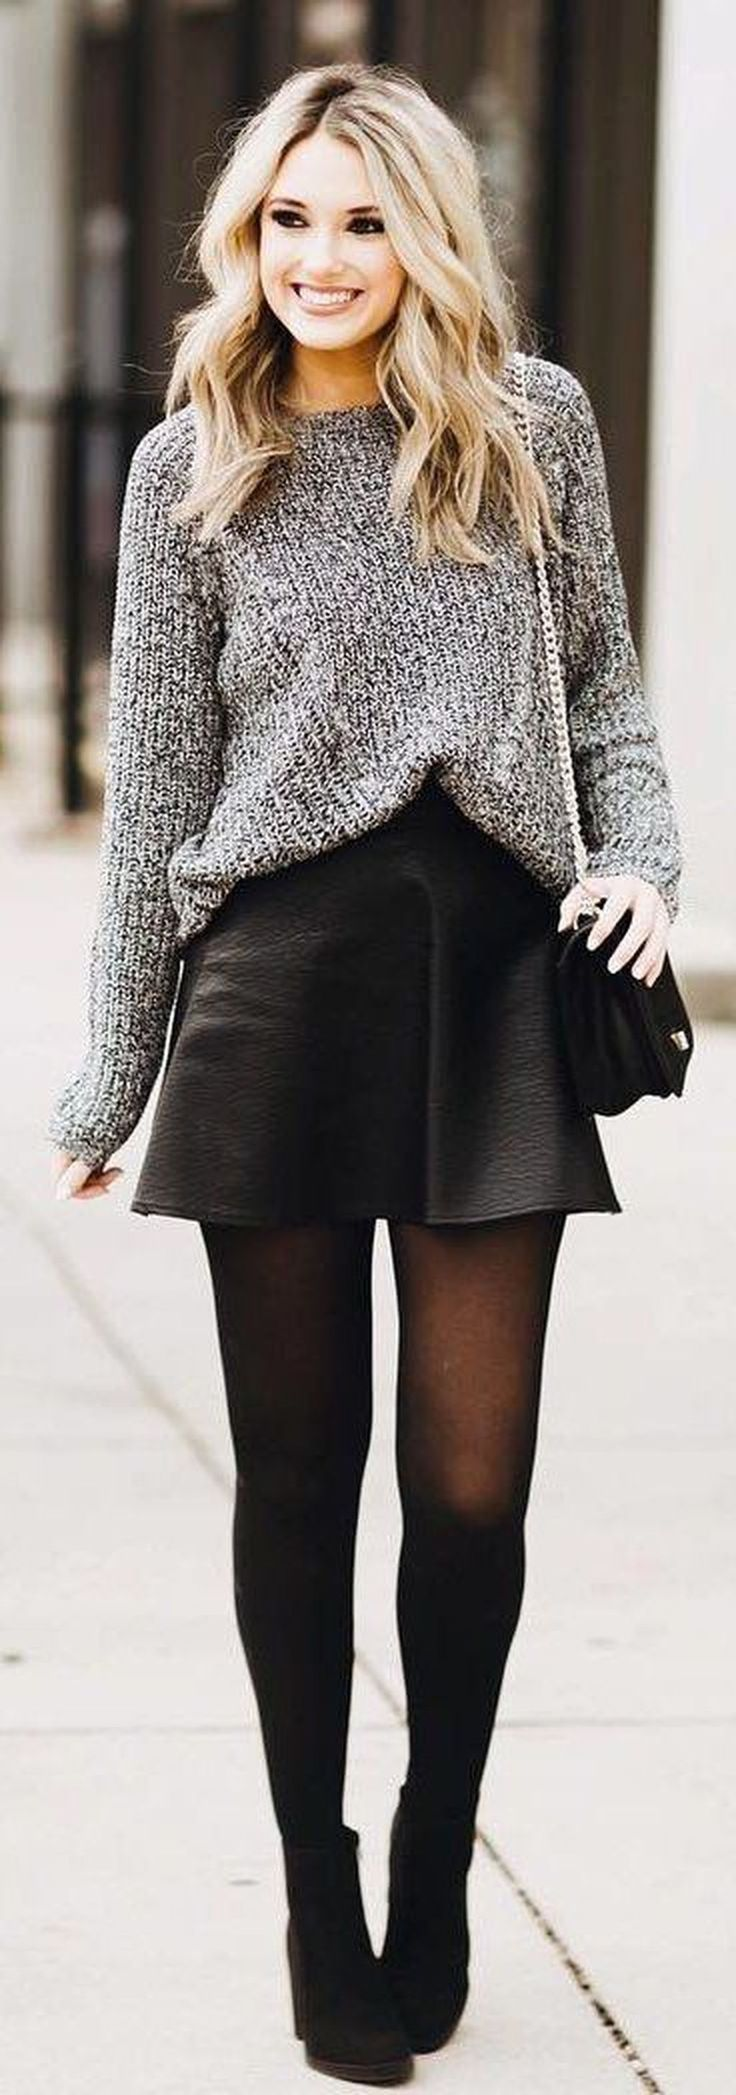 Awesome 48 Cute Winter Outfits Ideas For Going Out. More at http://aksahinjewelry.com/2018/01/19/48-cute-winter-outfits-ideas-going/ #winteroutfits